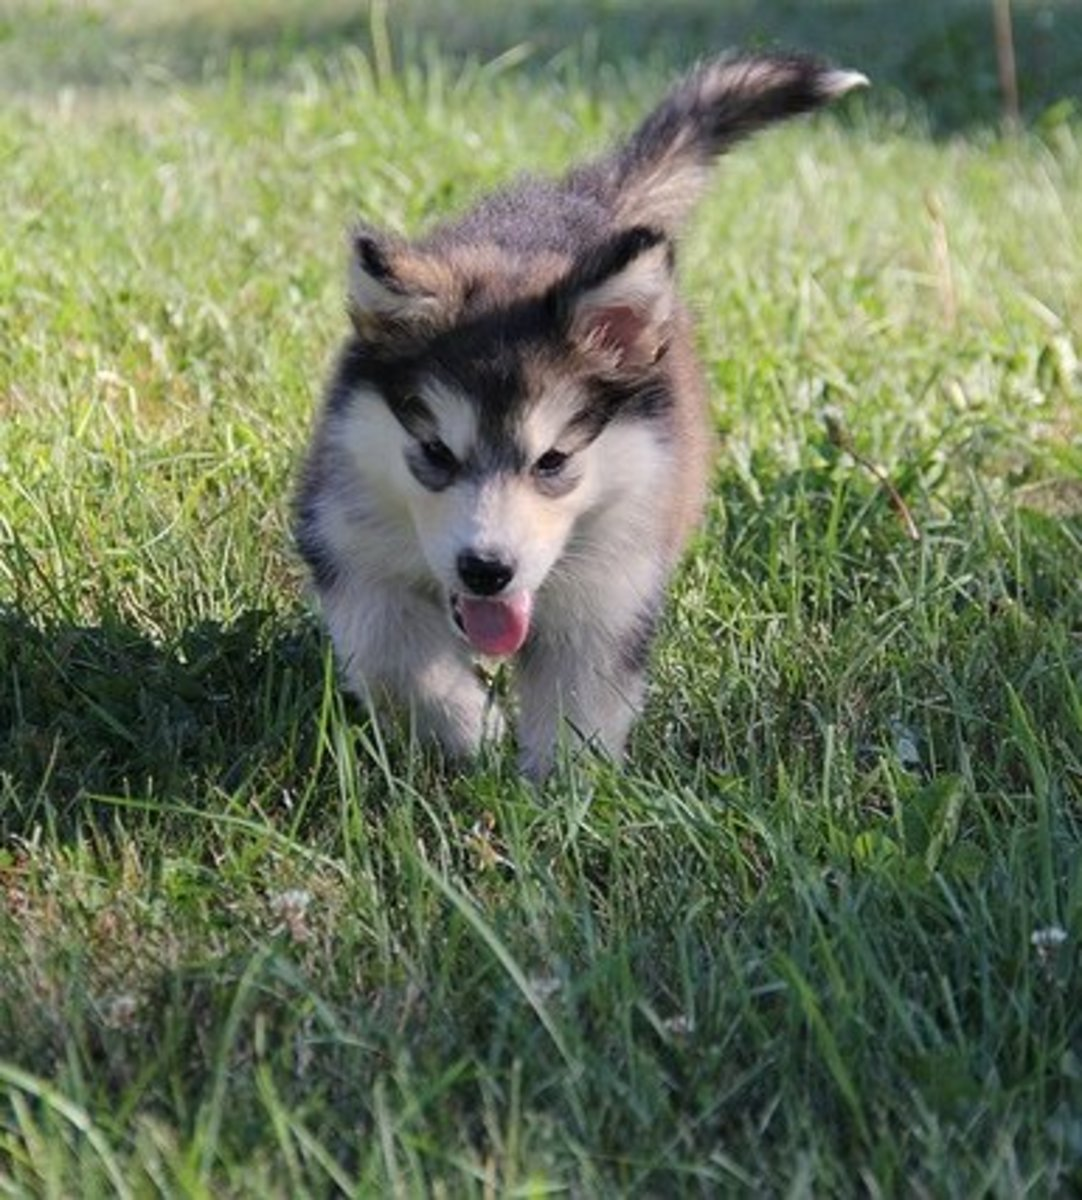 The Alaskan Malamute is another sled dog that does not stink.